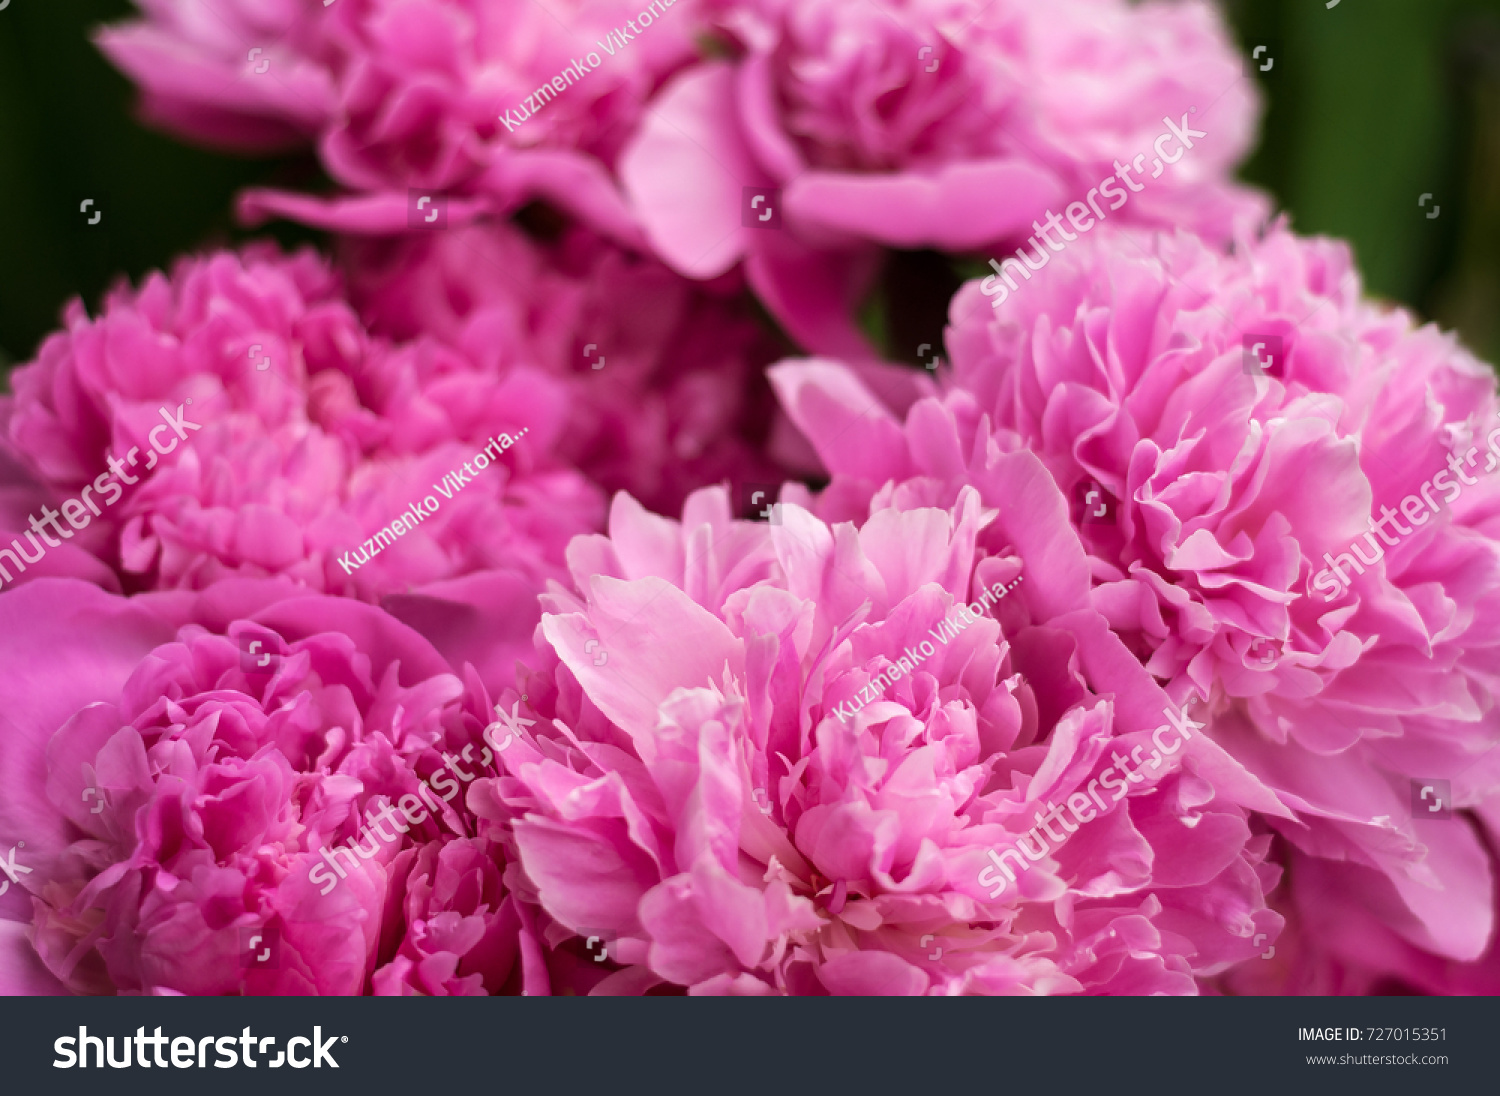 Group Of Fresh Pink Peonies In The Garden In The Summer Closeup Of